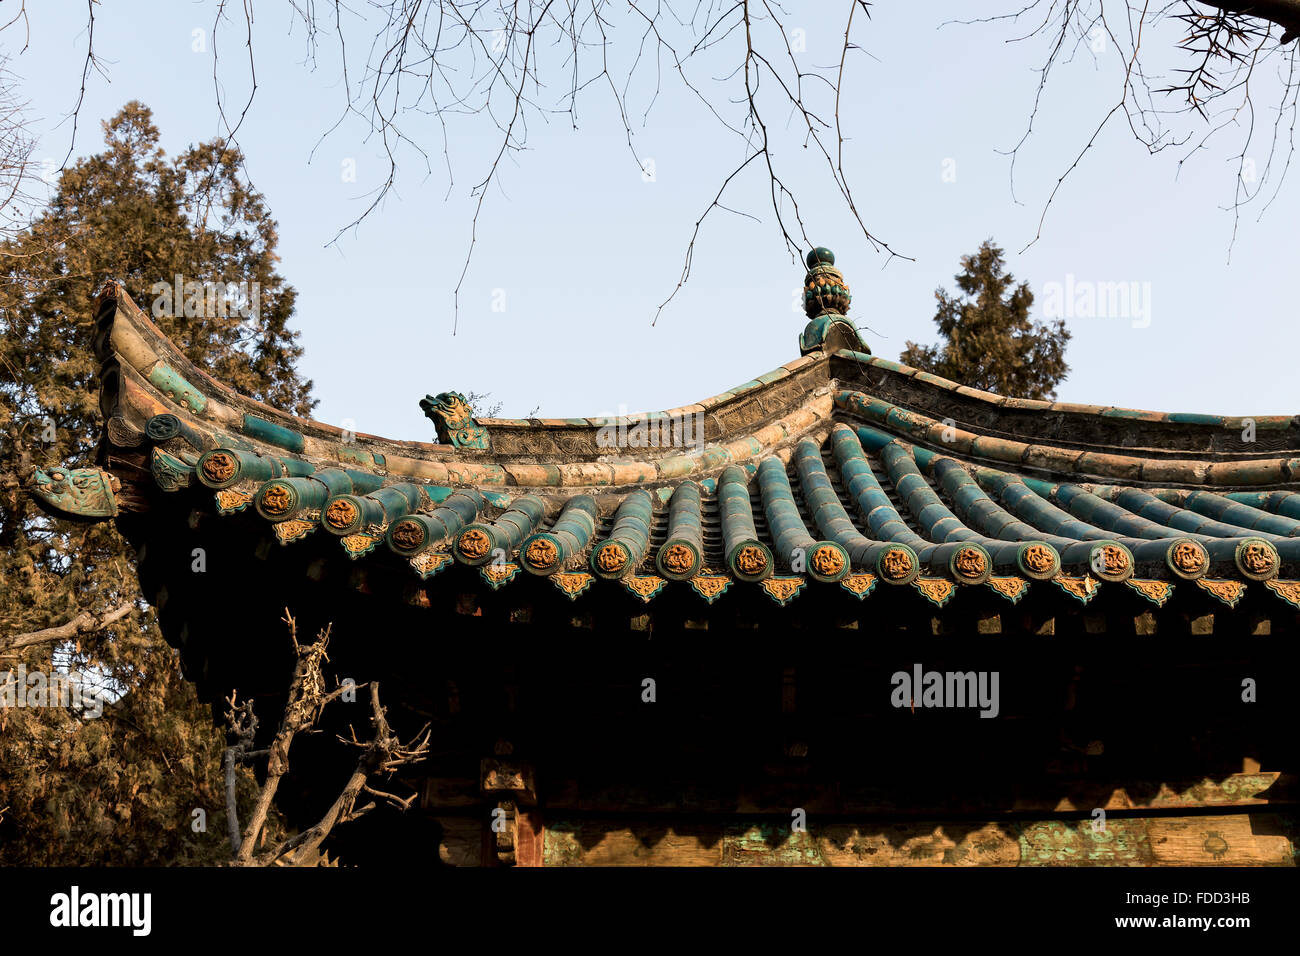 Chinese Pavilion Roof Design High Resolution Stock Photography And Images Alamy